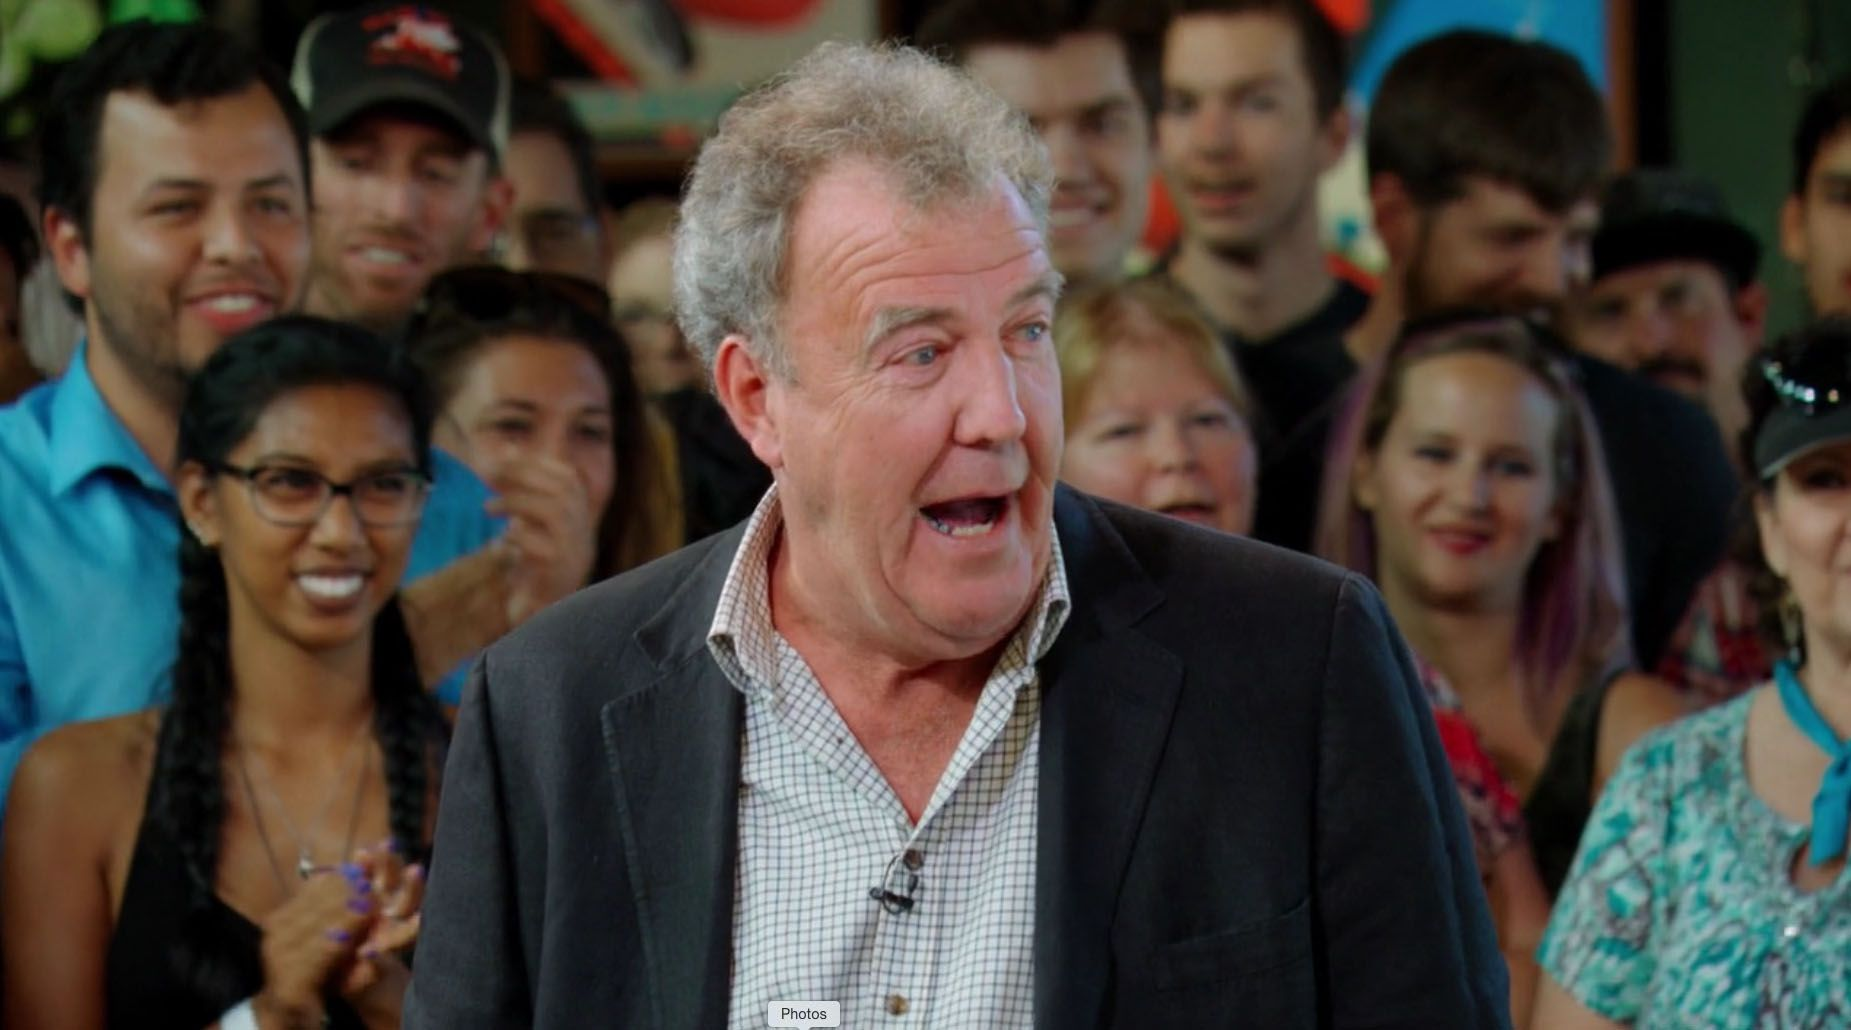 The Grand Tour's Jeremy Clarkson hits back at being asked to have makeover ahead of TV appearance